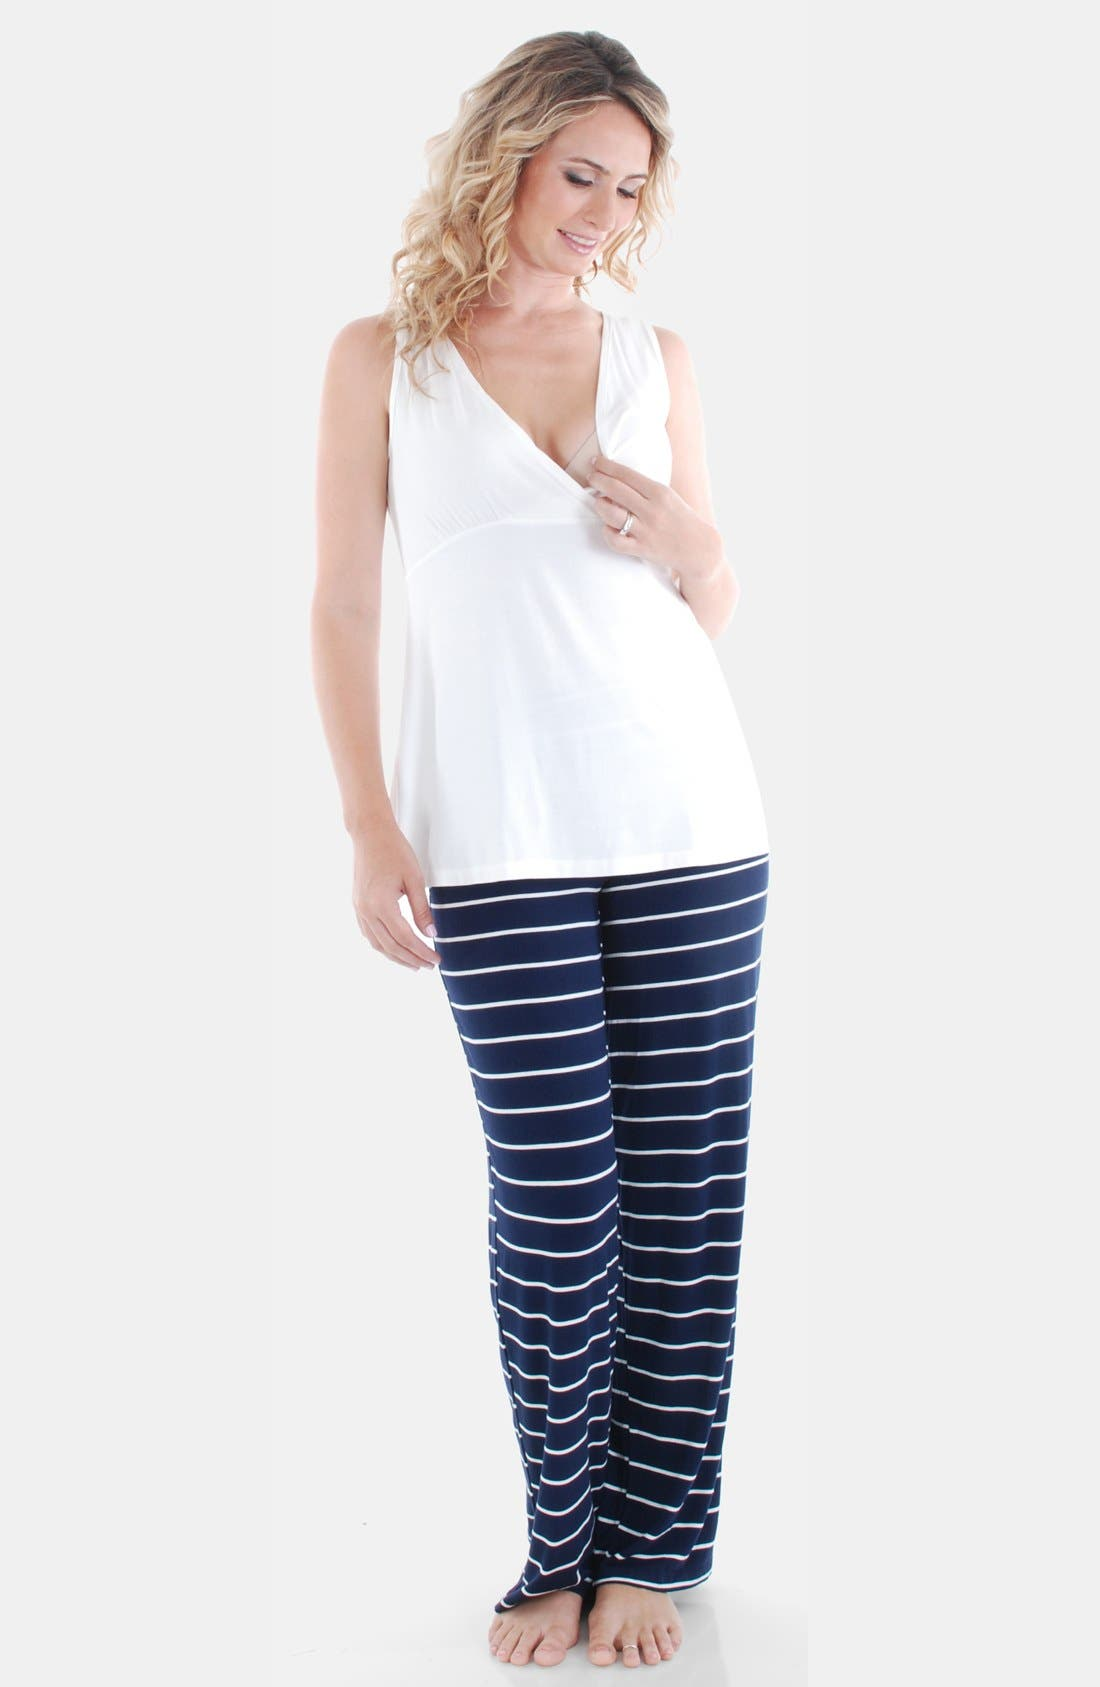 EVERLY GREY, Roxanne - During & After 5-Piece Maternity Sleepwear Set, Alternate thumbnail 5, color, NAVY